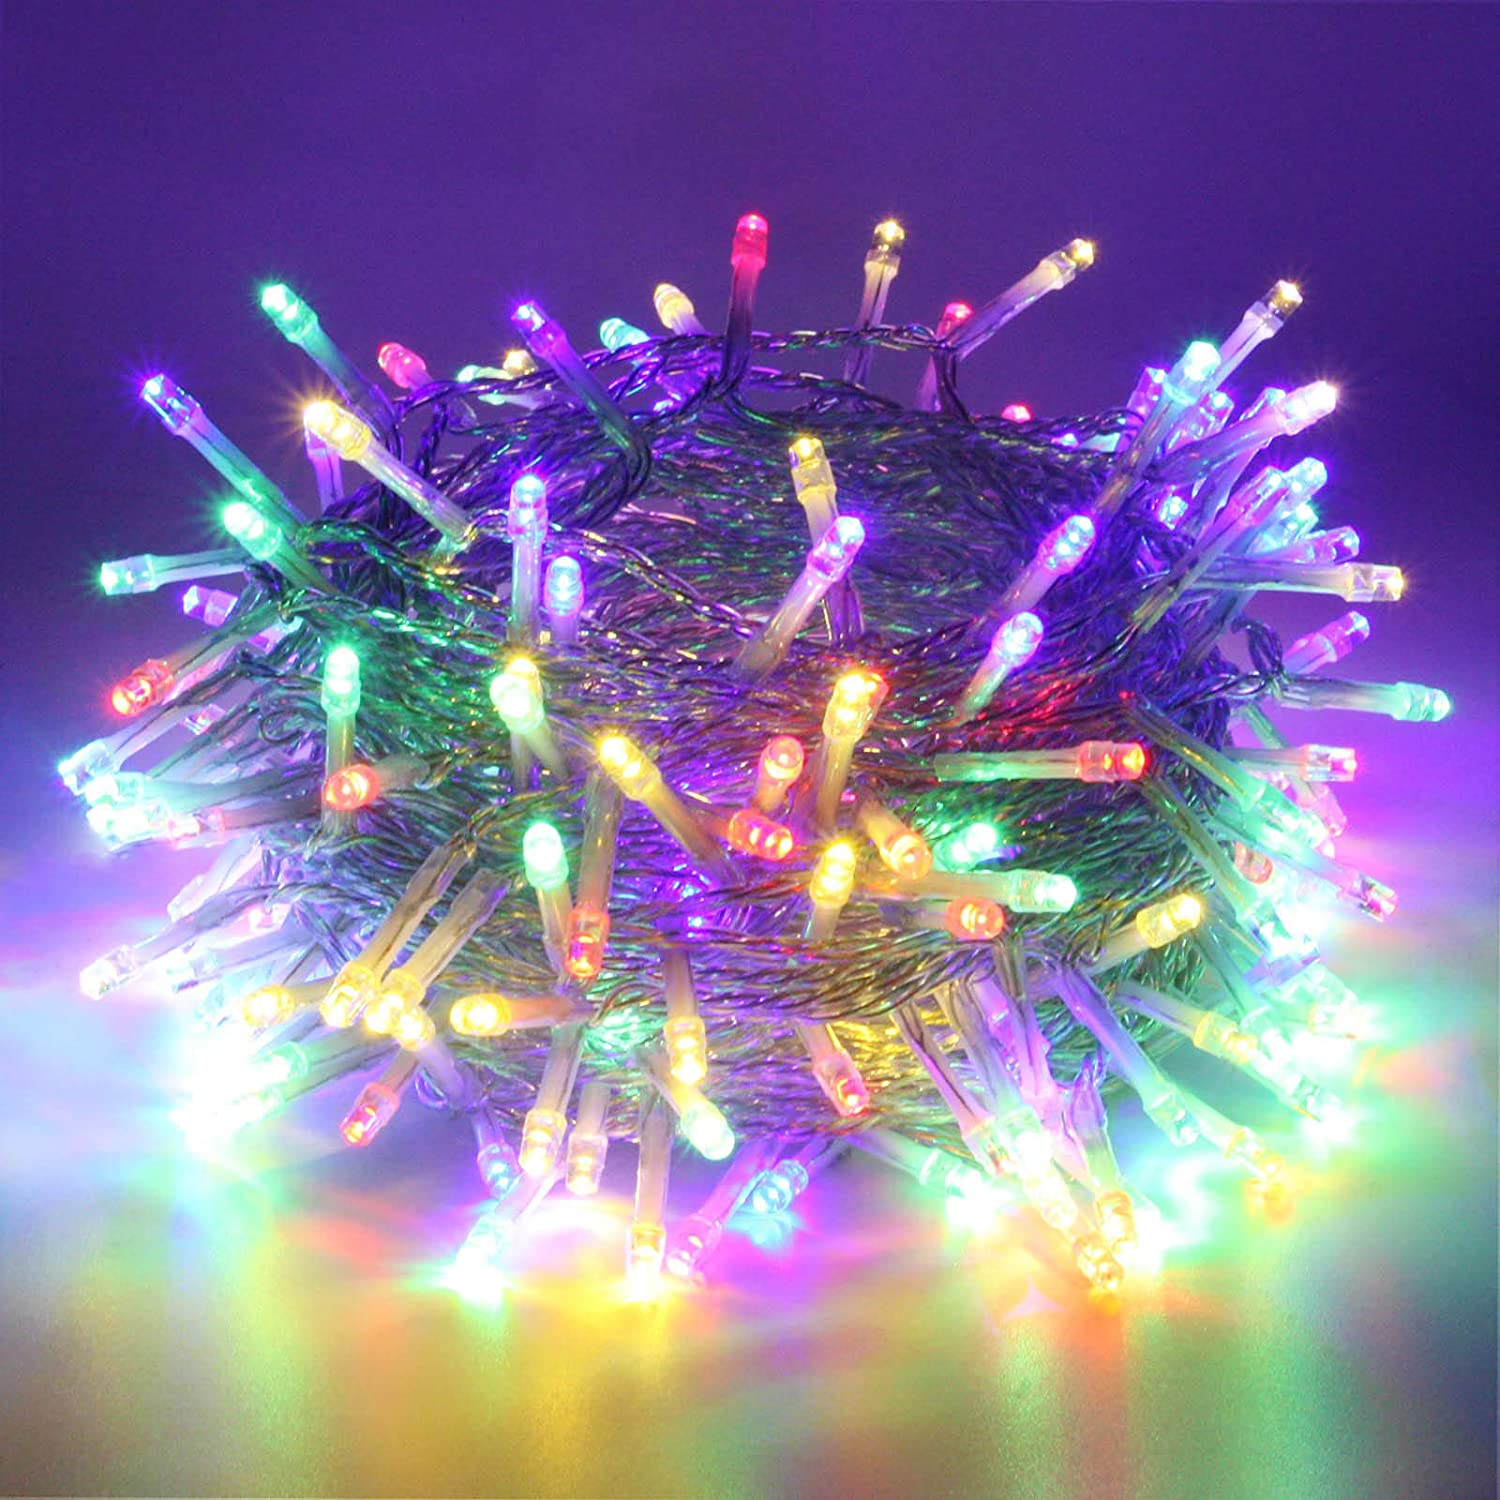 SANJICHA String Lights Indoor/Outdoor, Upgraded Super Bright Christmas Lights with 8 Modes, 66FT 200 LED Waterproof Decorative Lights for Christmas Tree Garden Patio Bedroom (Multicolor)